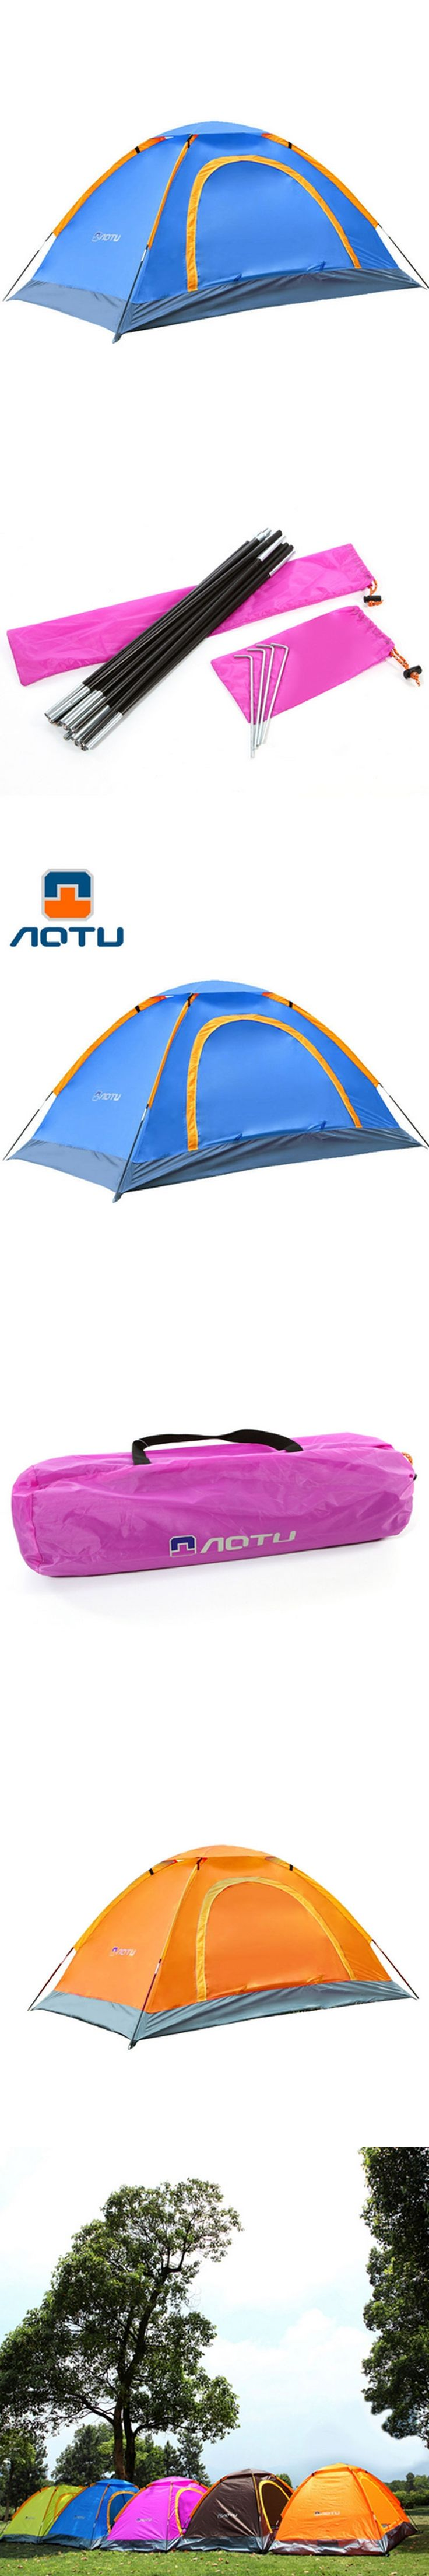 1-2 person single Layer  pressure rubber tent Outdoor Camping Tent Hiking Beach Tent Windproof Waterproof Tent